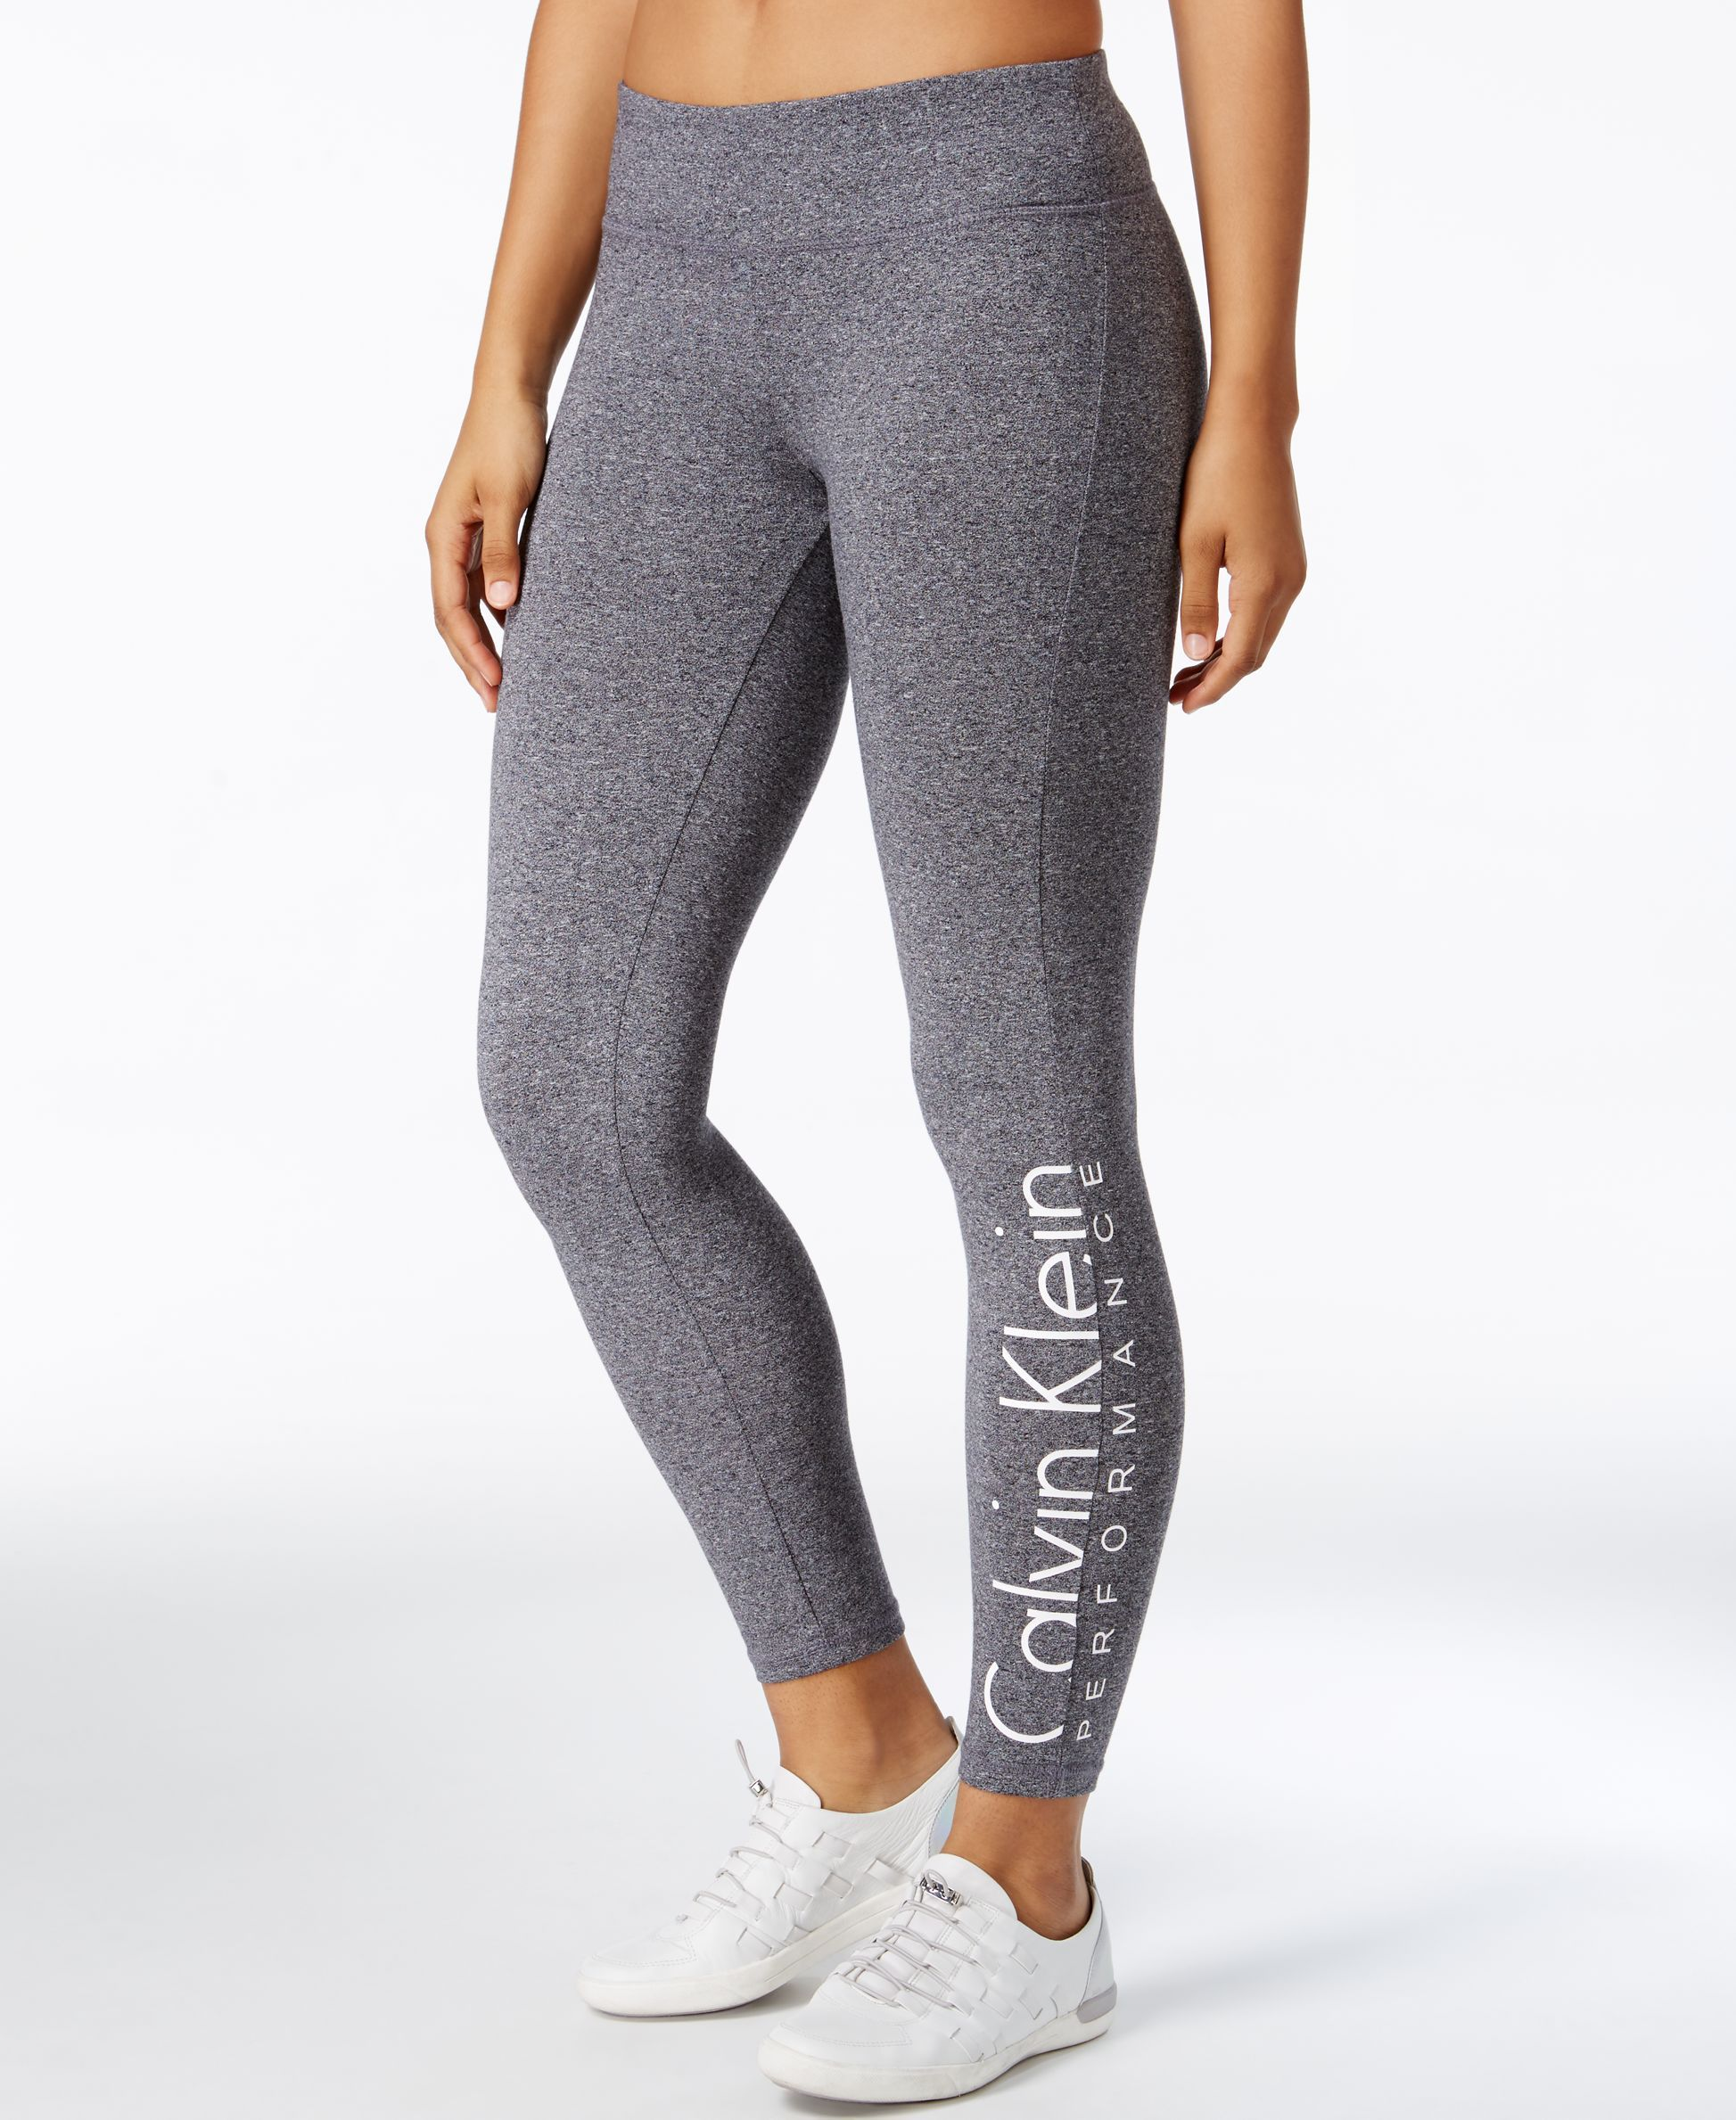 e922dfdce0 Make sleek comfort part of your workout or weekend routine with these  leggings from Calvin Klein Performance